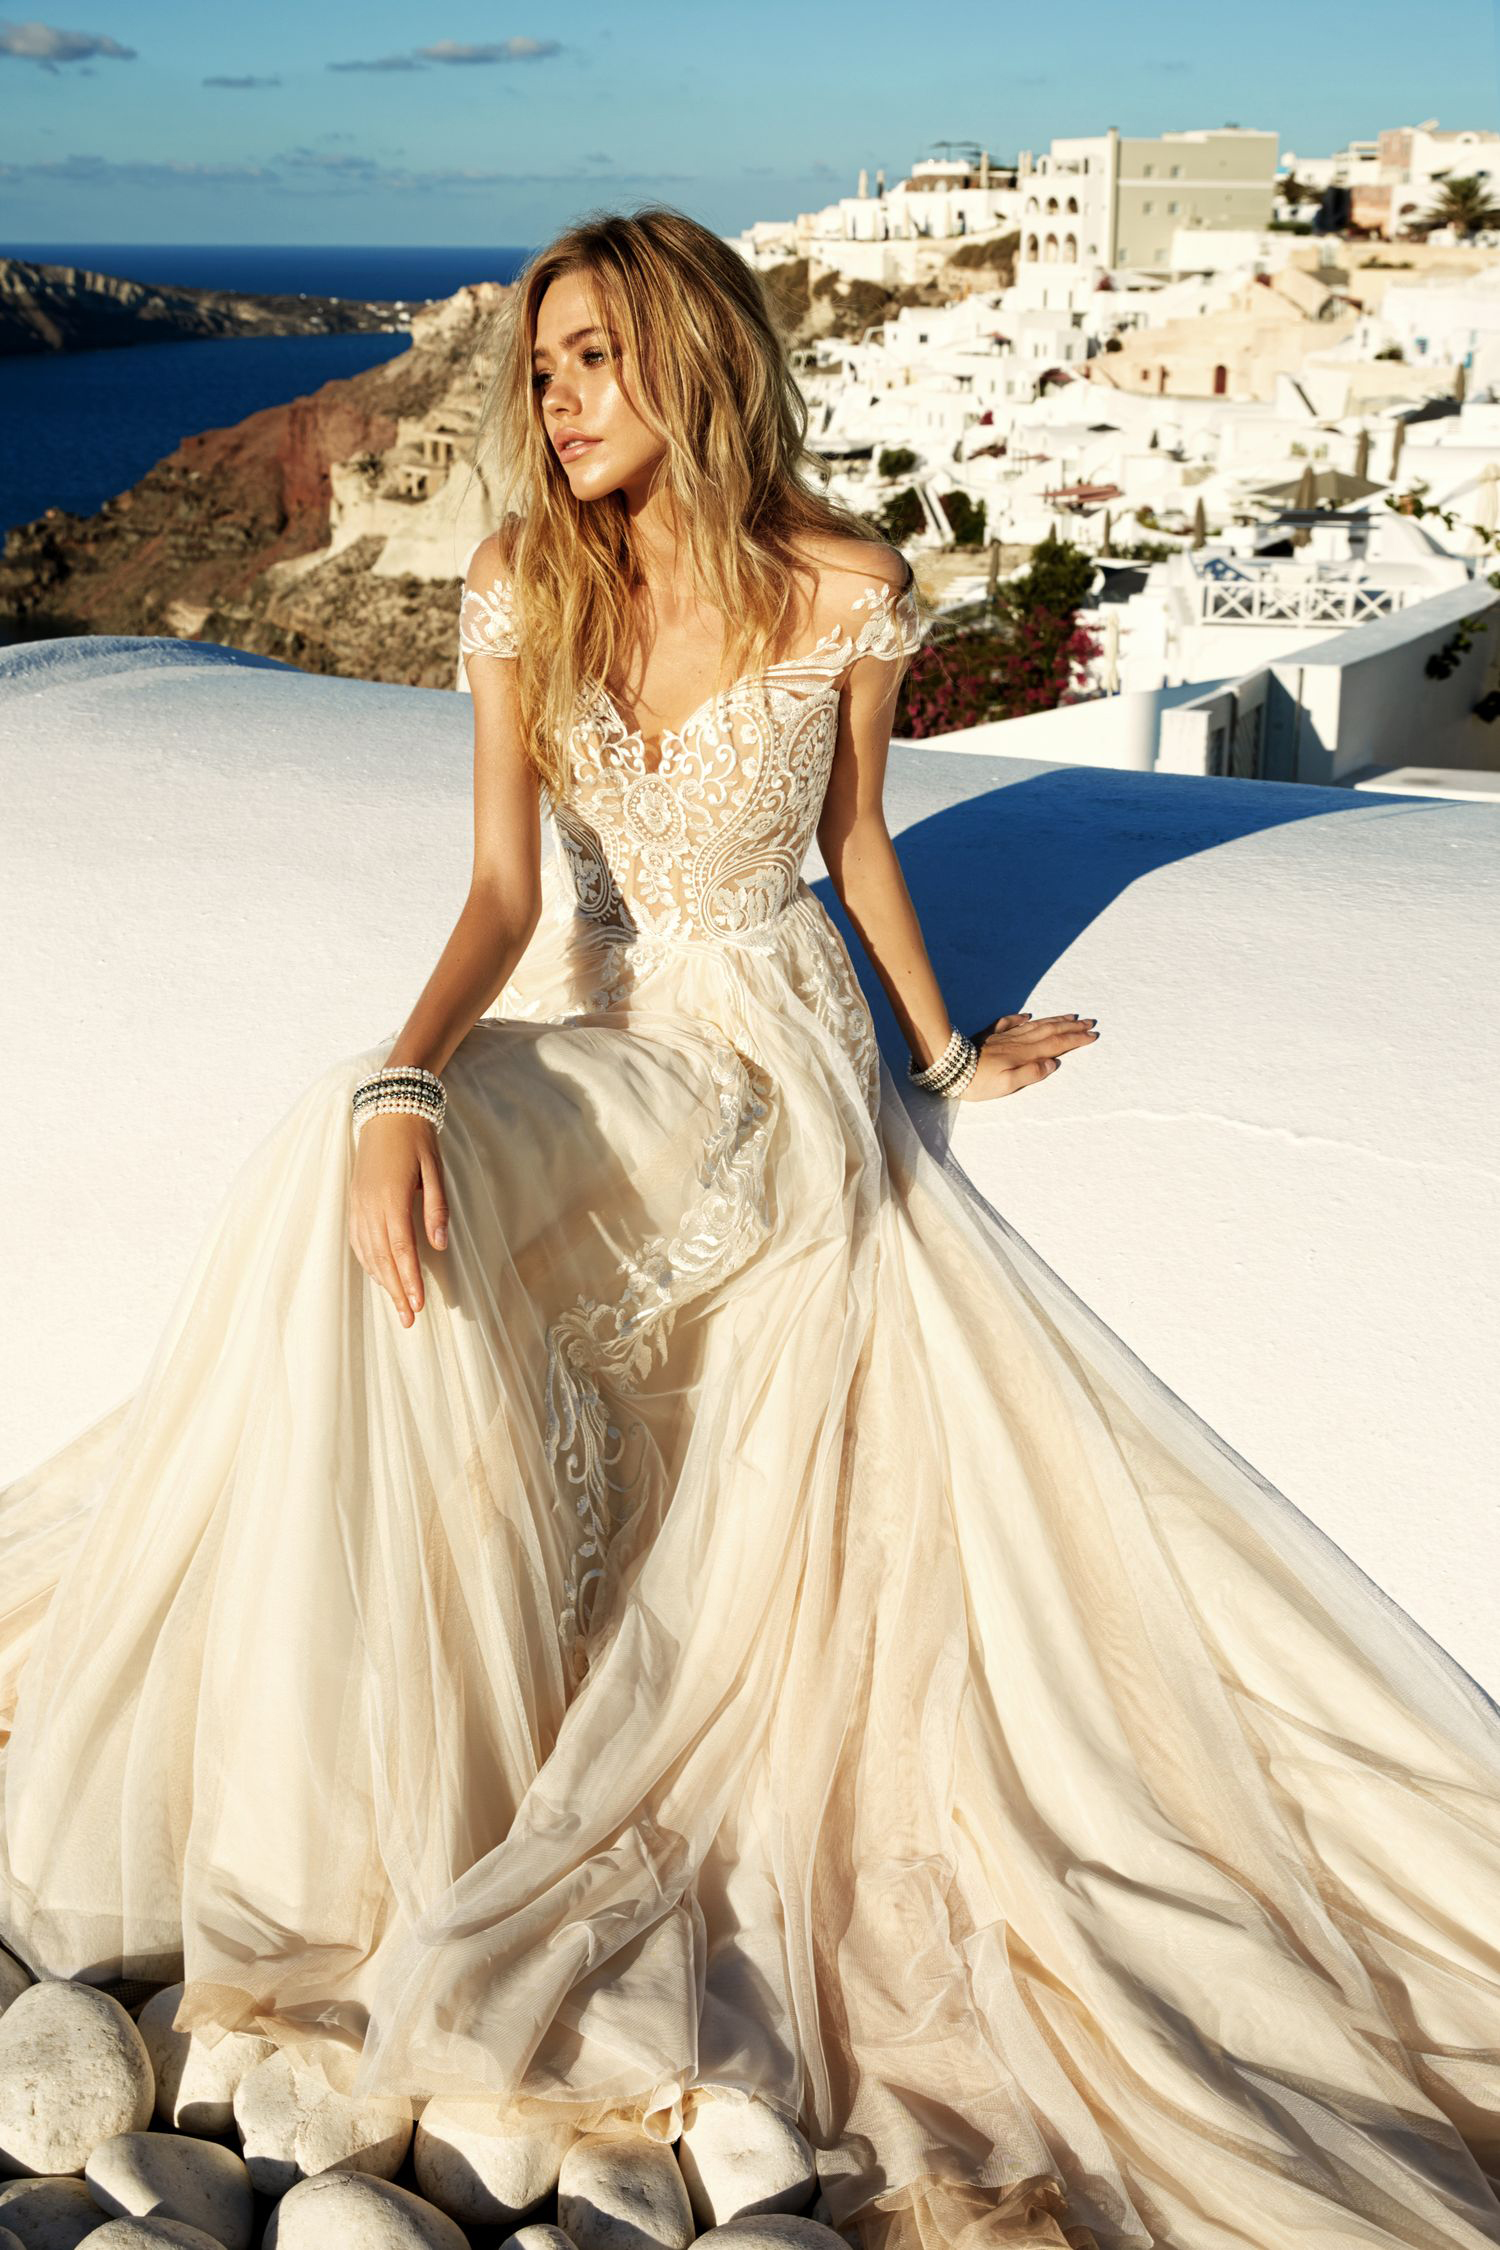 Boho Vintage Illusion Neck Lace Embroidered Long A Line Colored Wedding Dress With Cap Sleeves